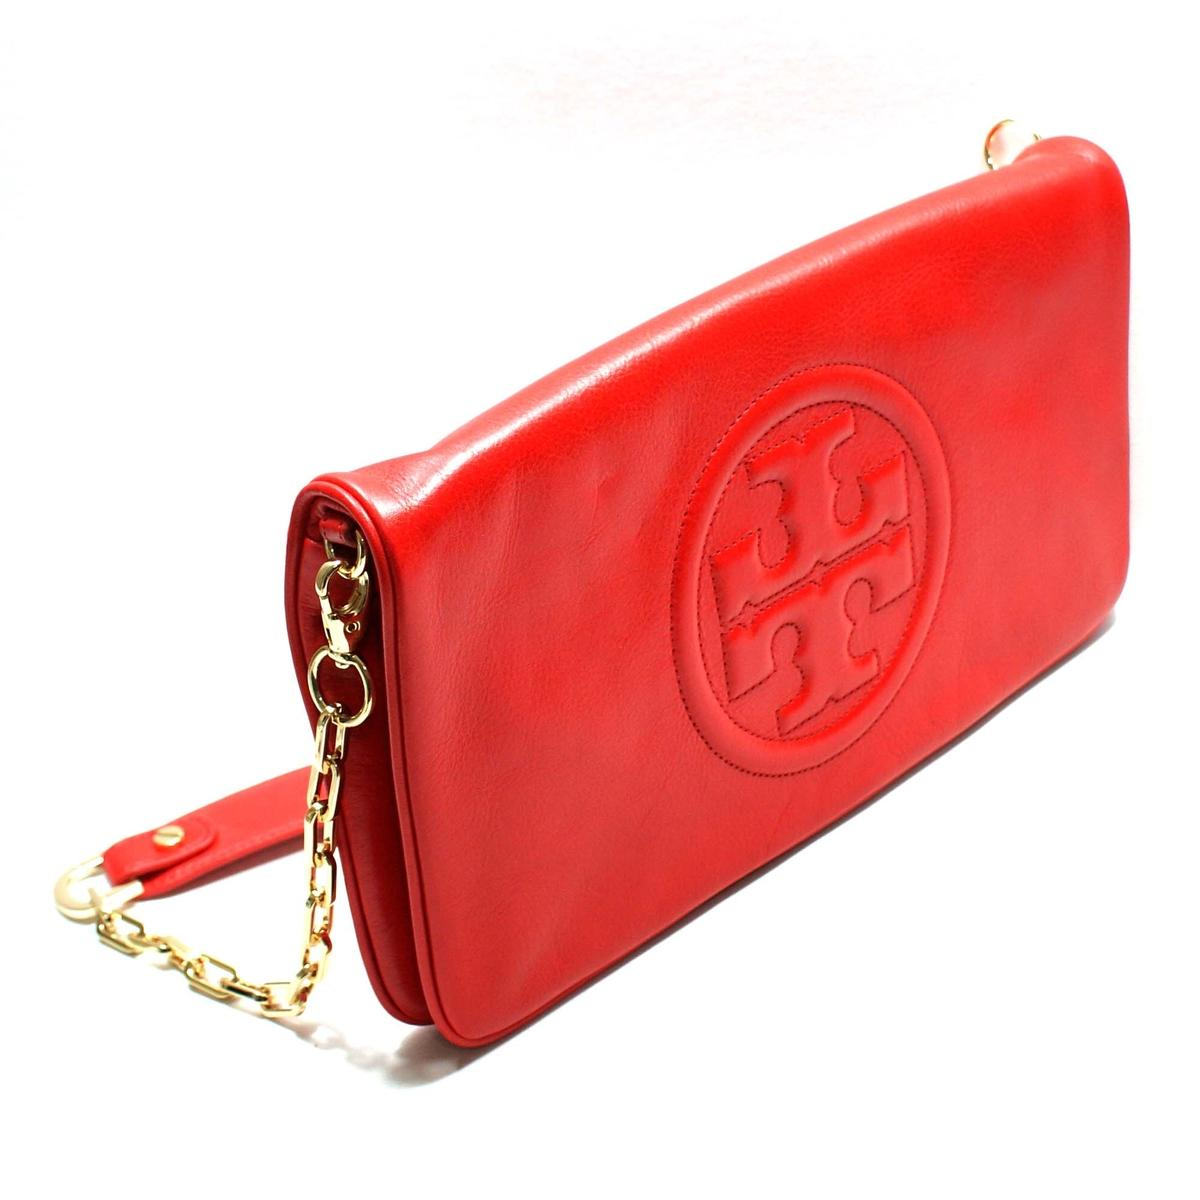 Tory Burch Tory Red Leather Bombe Reva Clutch/ Shoulder Bag #90009600 ...